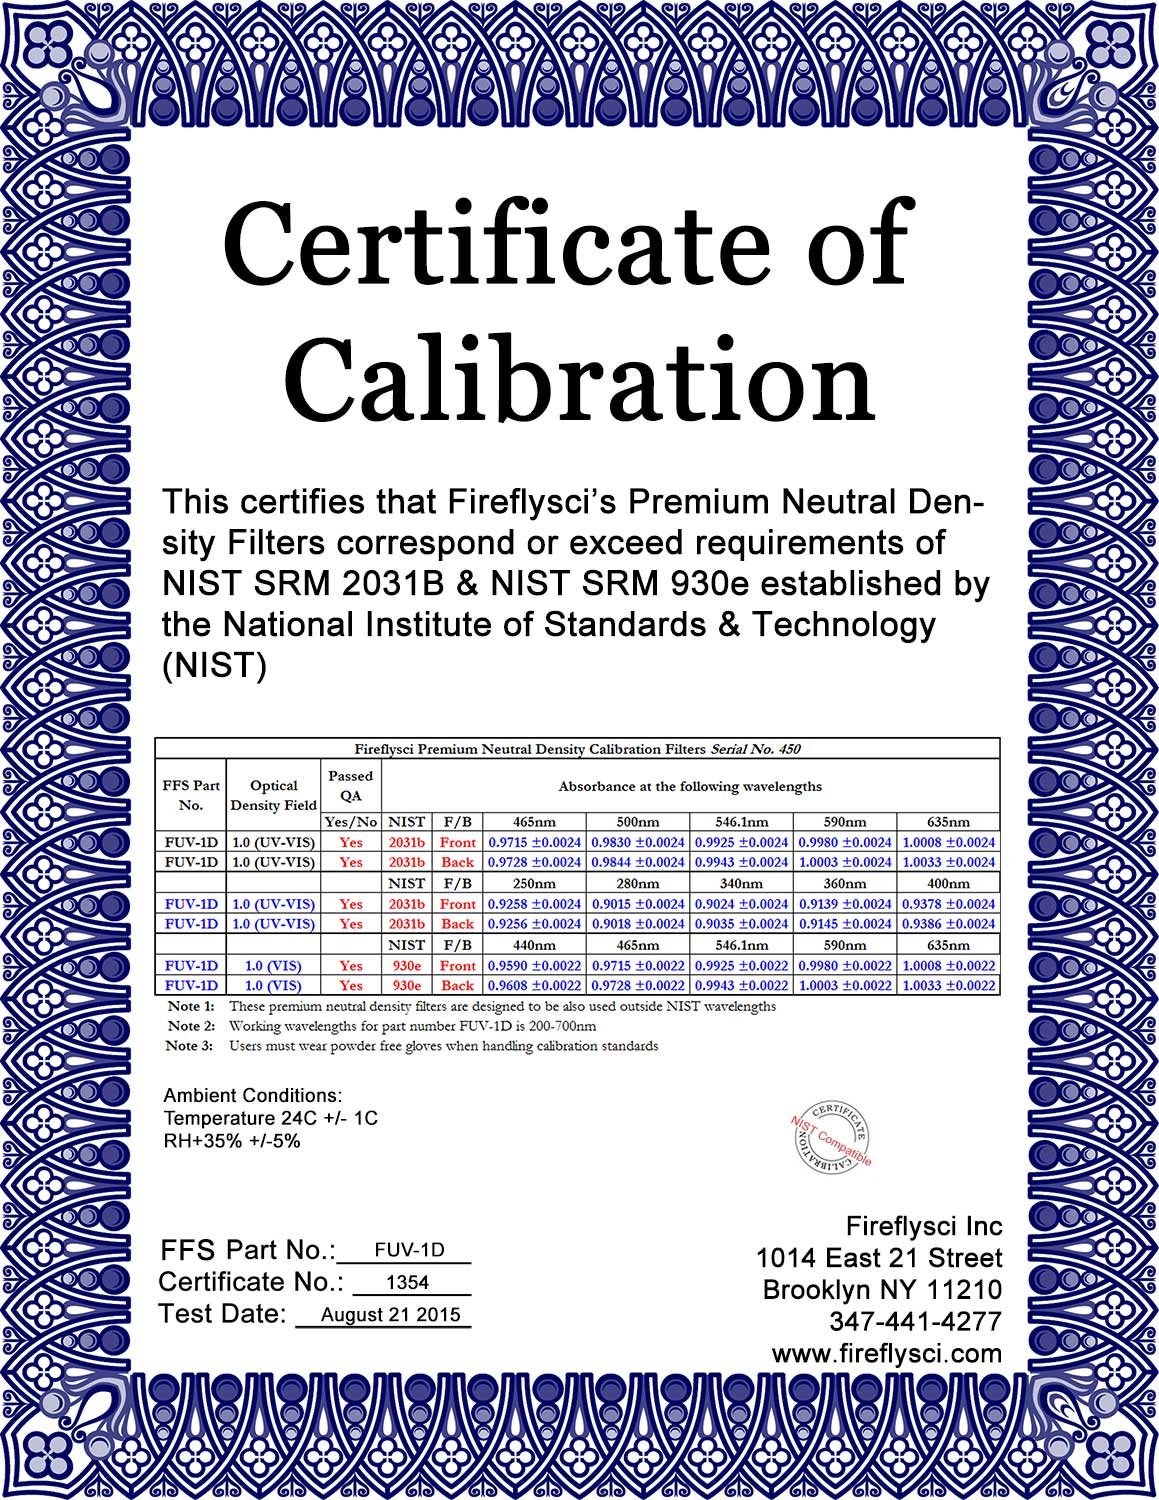 Sample FUV-1.0D Certificate of Calibration